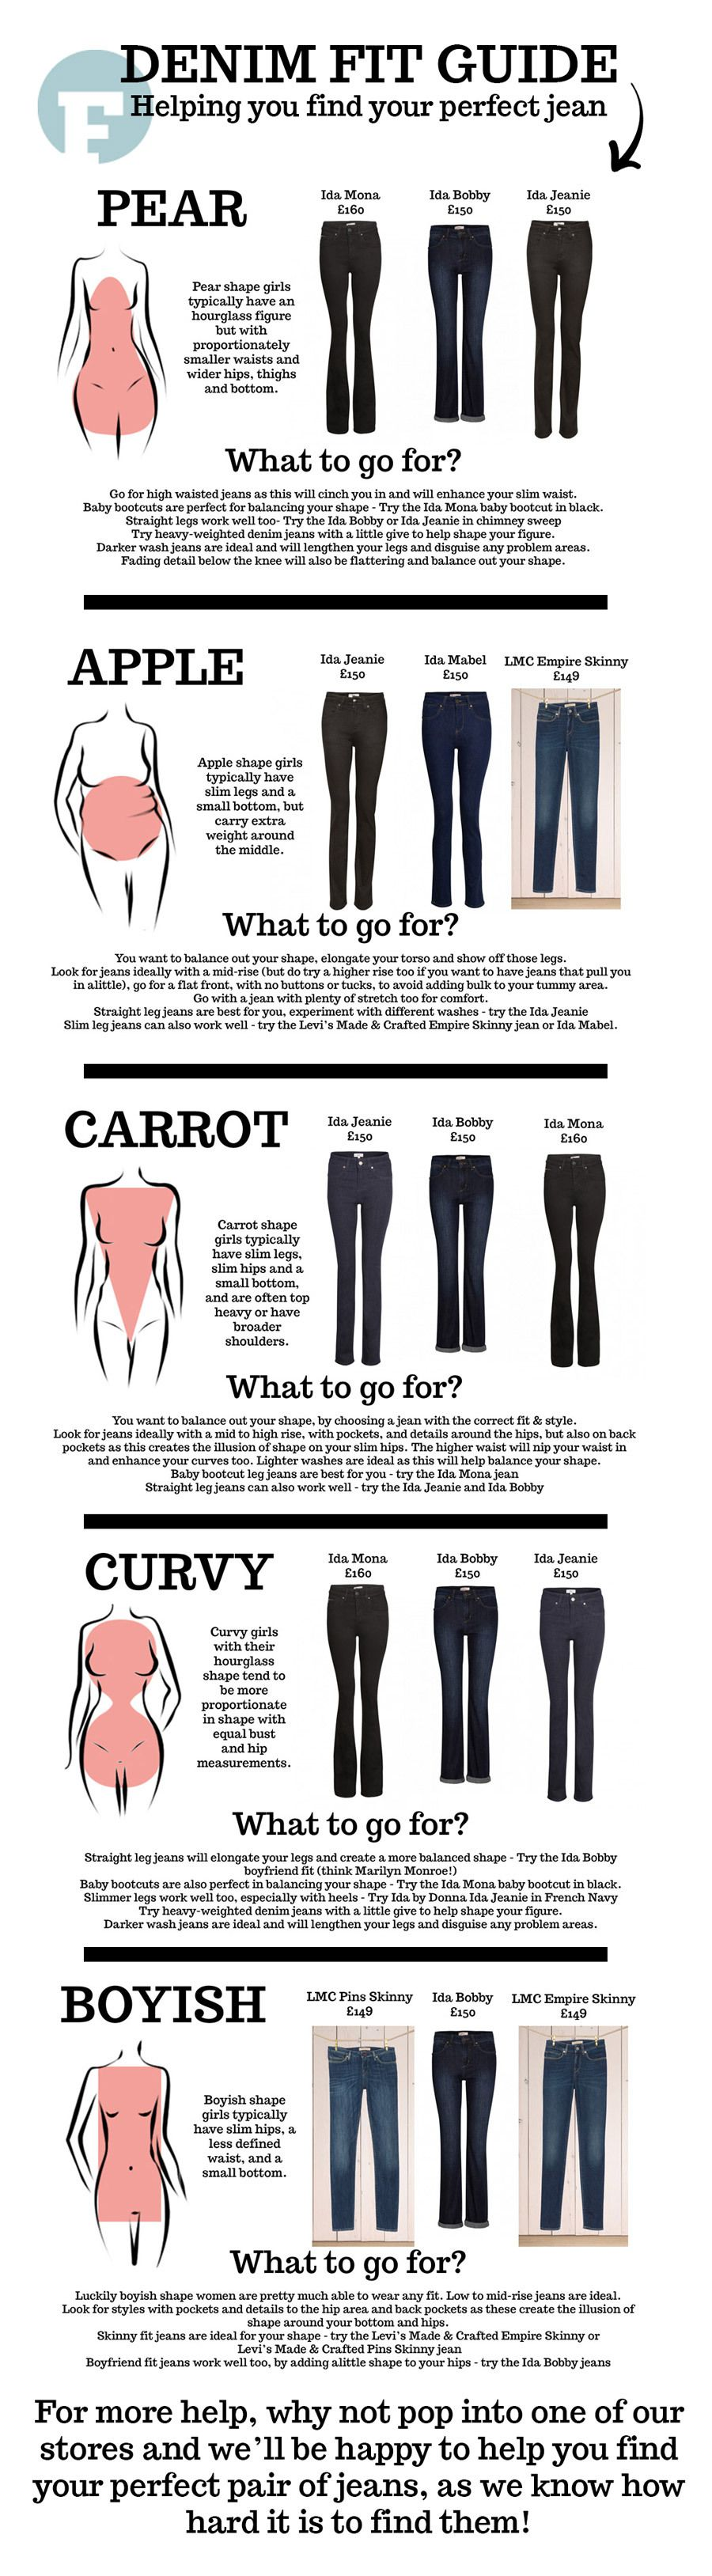 How to Find Best Jeans for Your Body Type